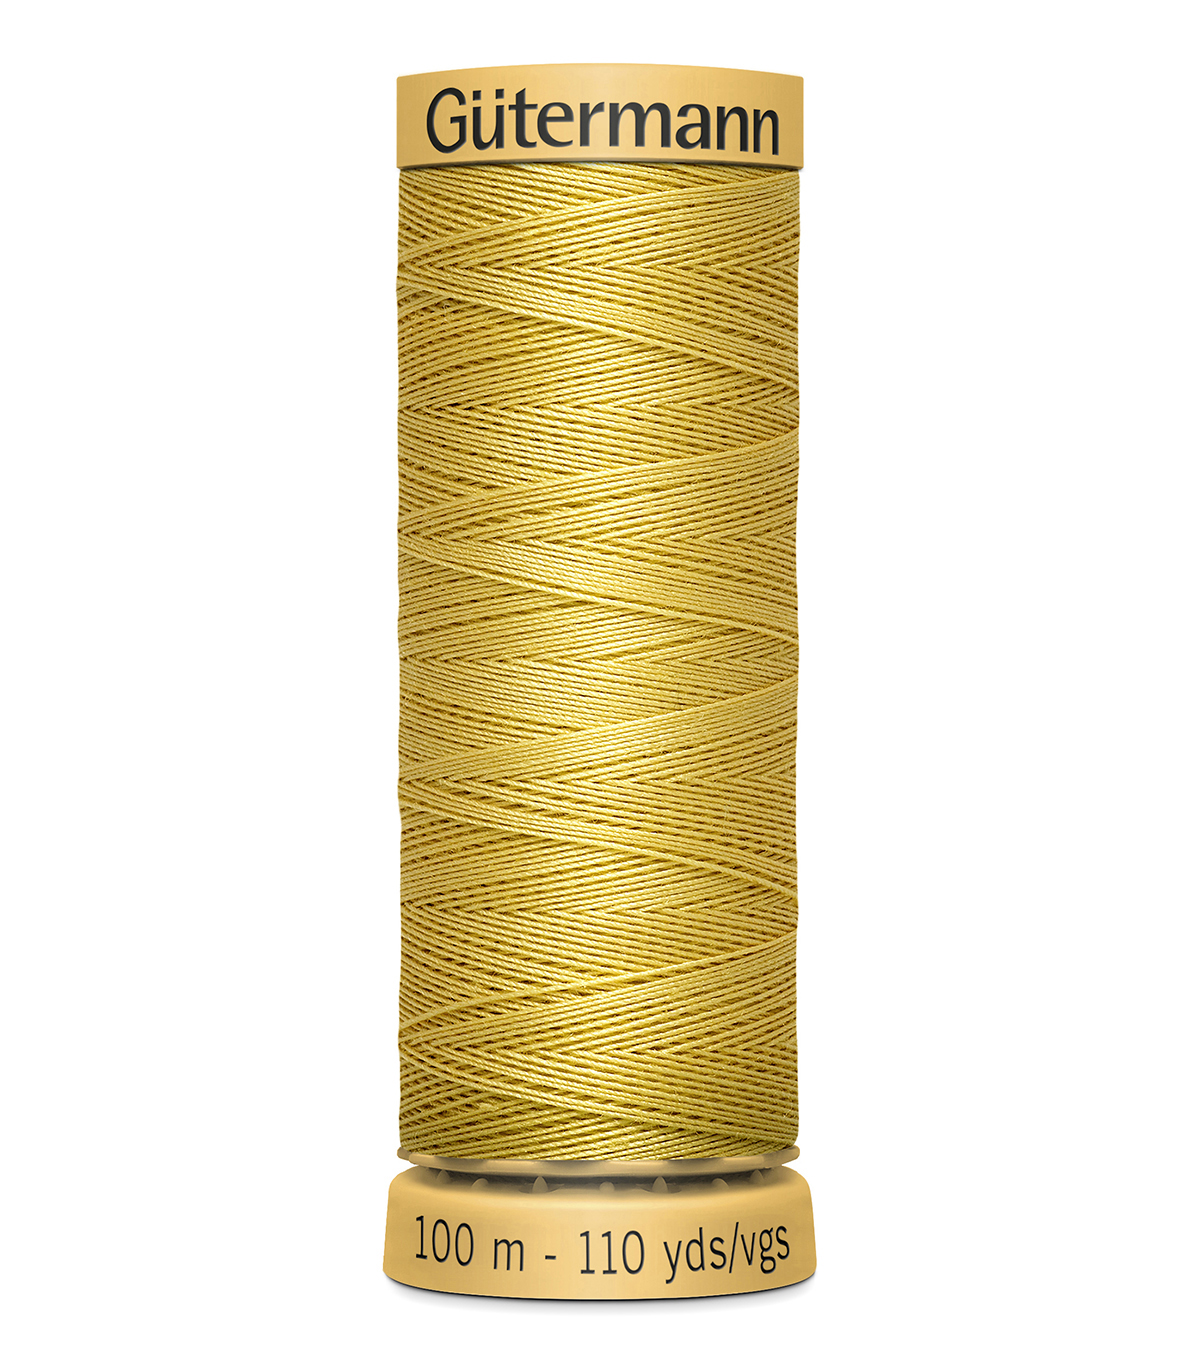 Gutermann Sew All Polyester Thread 110 Yards-Oranges & Yellows , Yellow